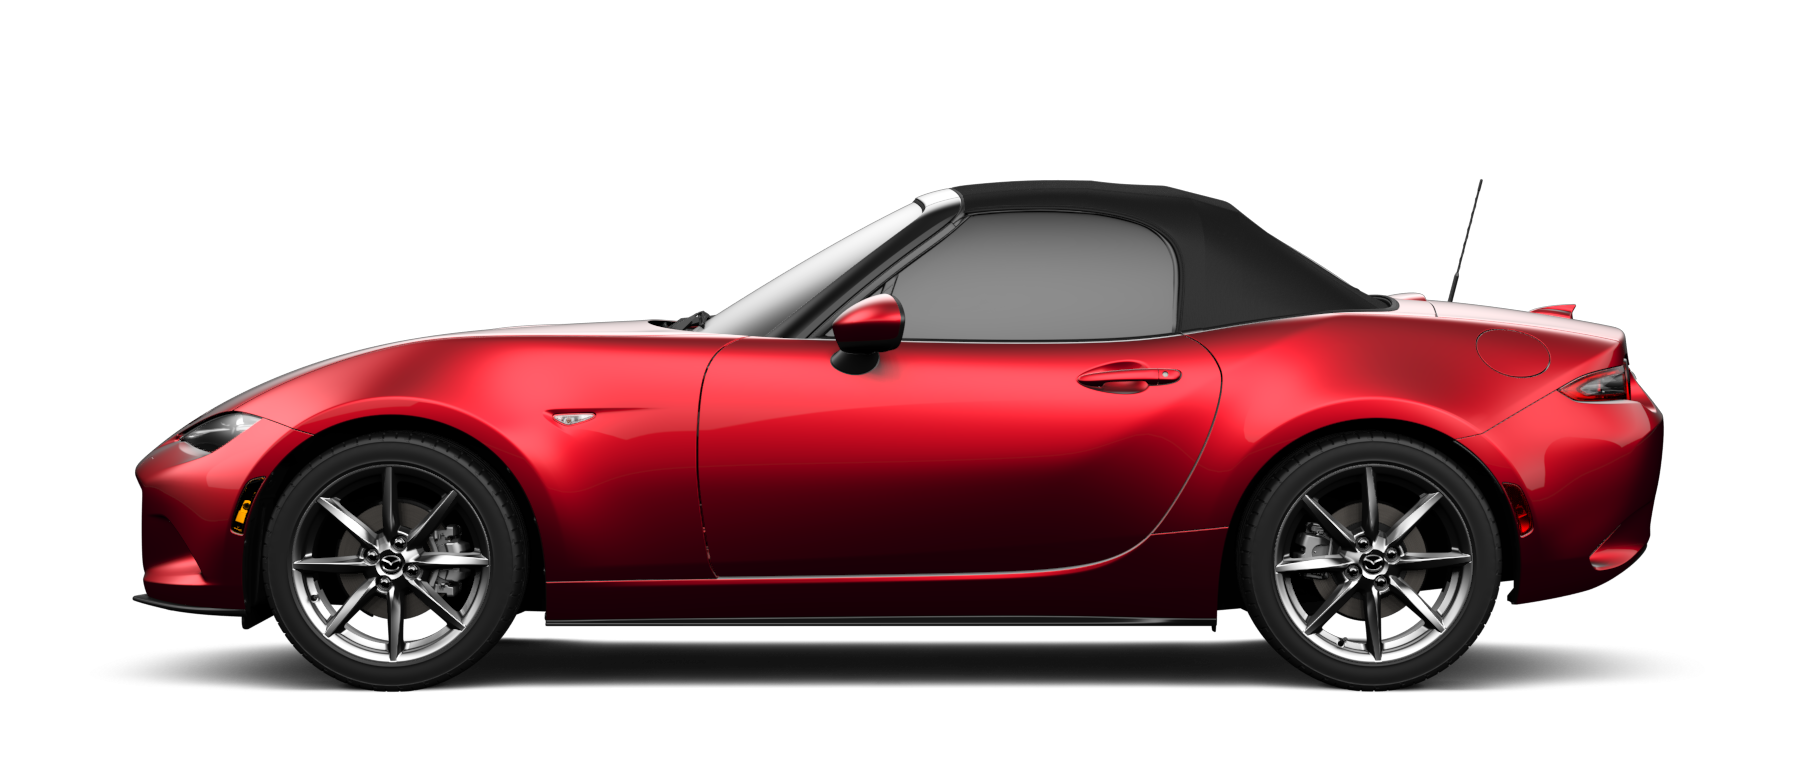 17 mx5 st gt 41v soul red profile global?w=428 2017 mazda mx 5 miata convertible roadster mazda usa 2008 Mazda Miata Trim Packages at suagrazia.org